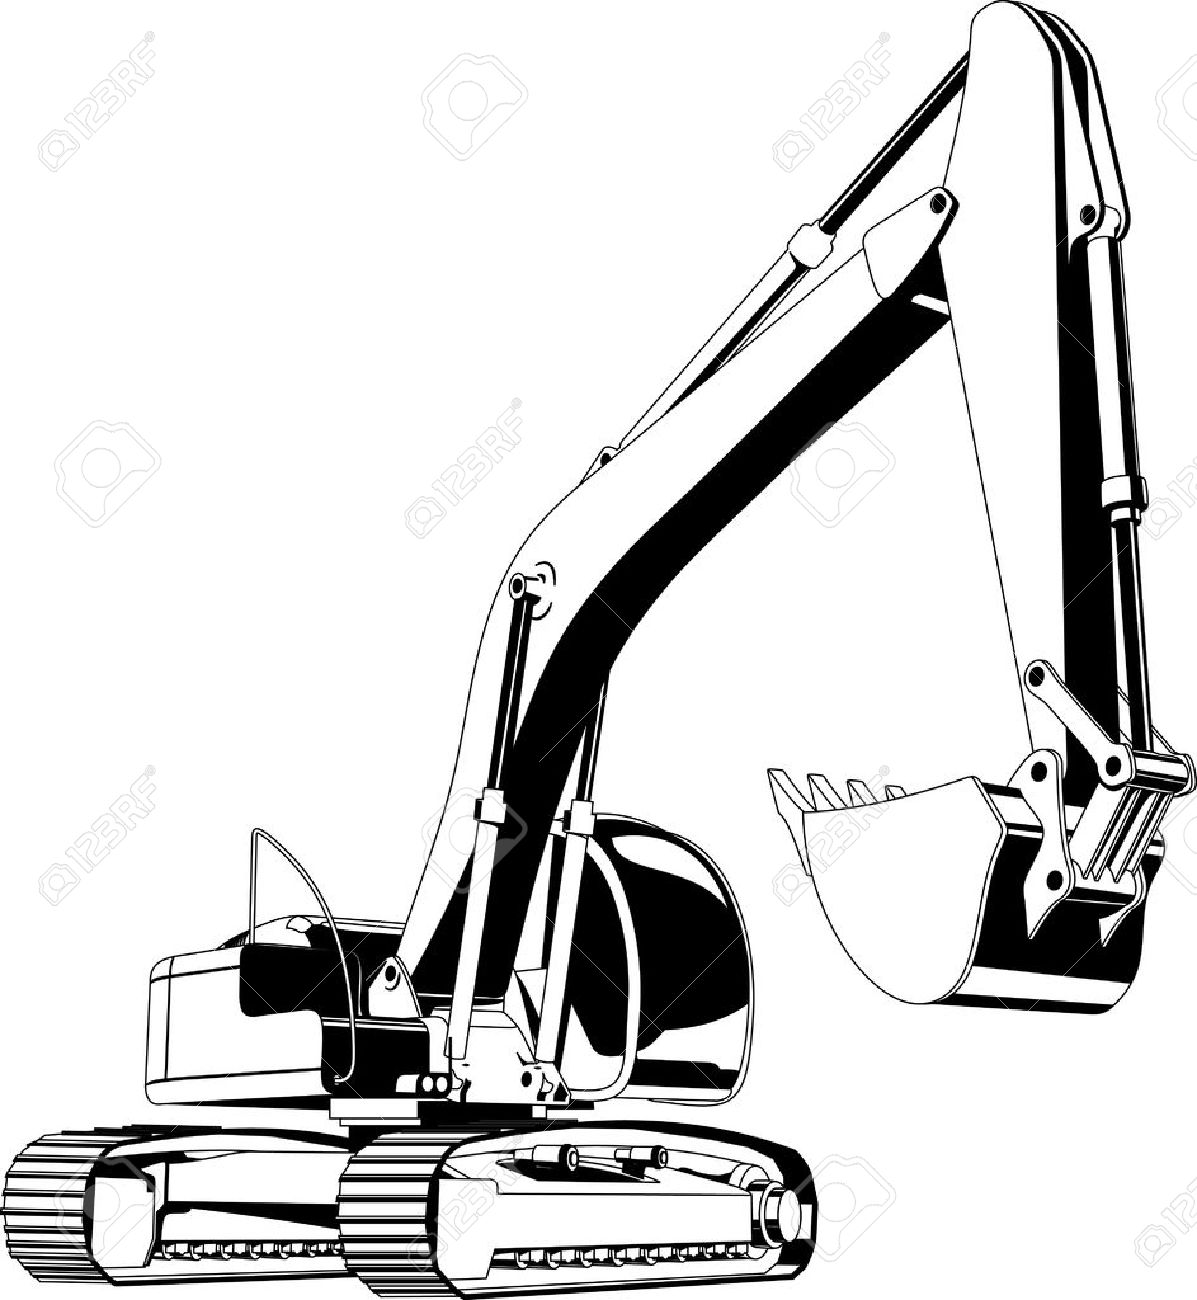 Station . Excavator clipart black and white